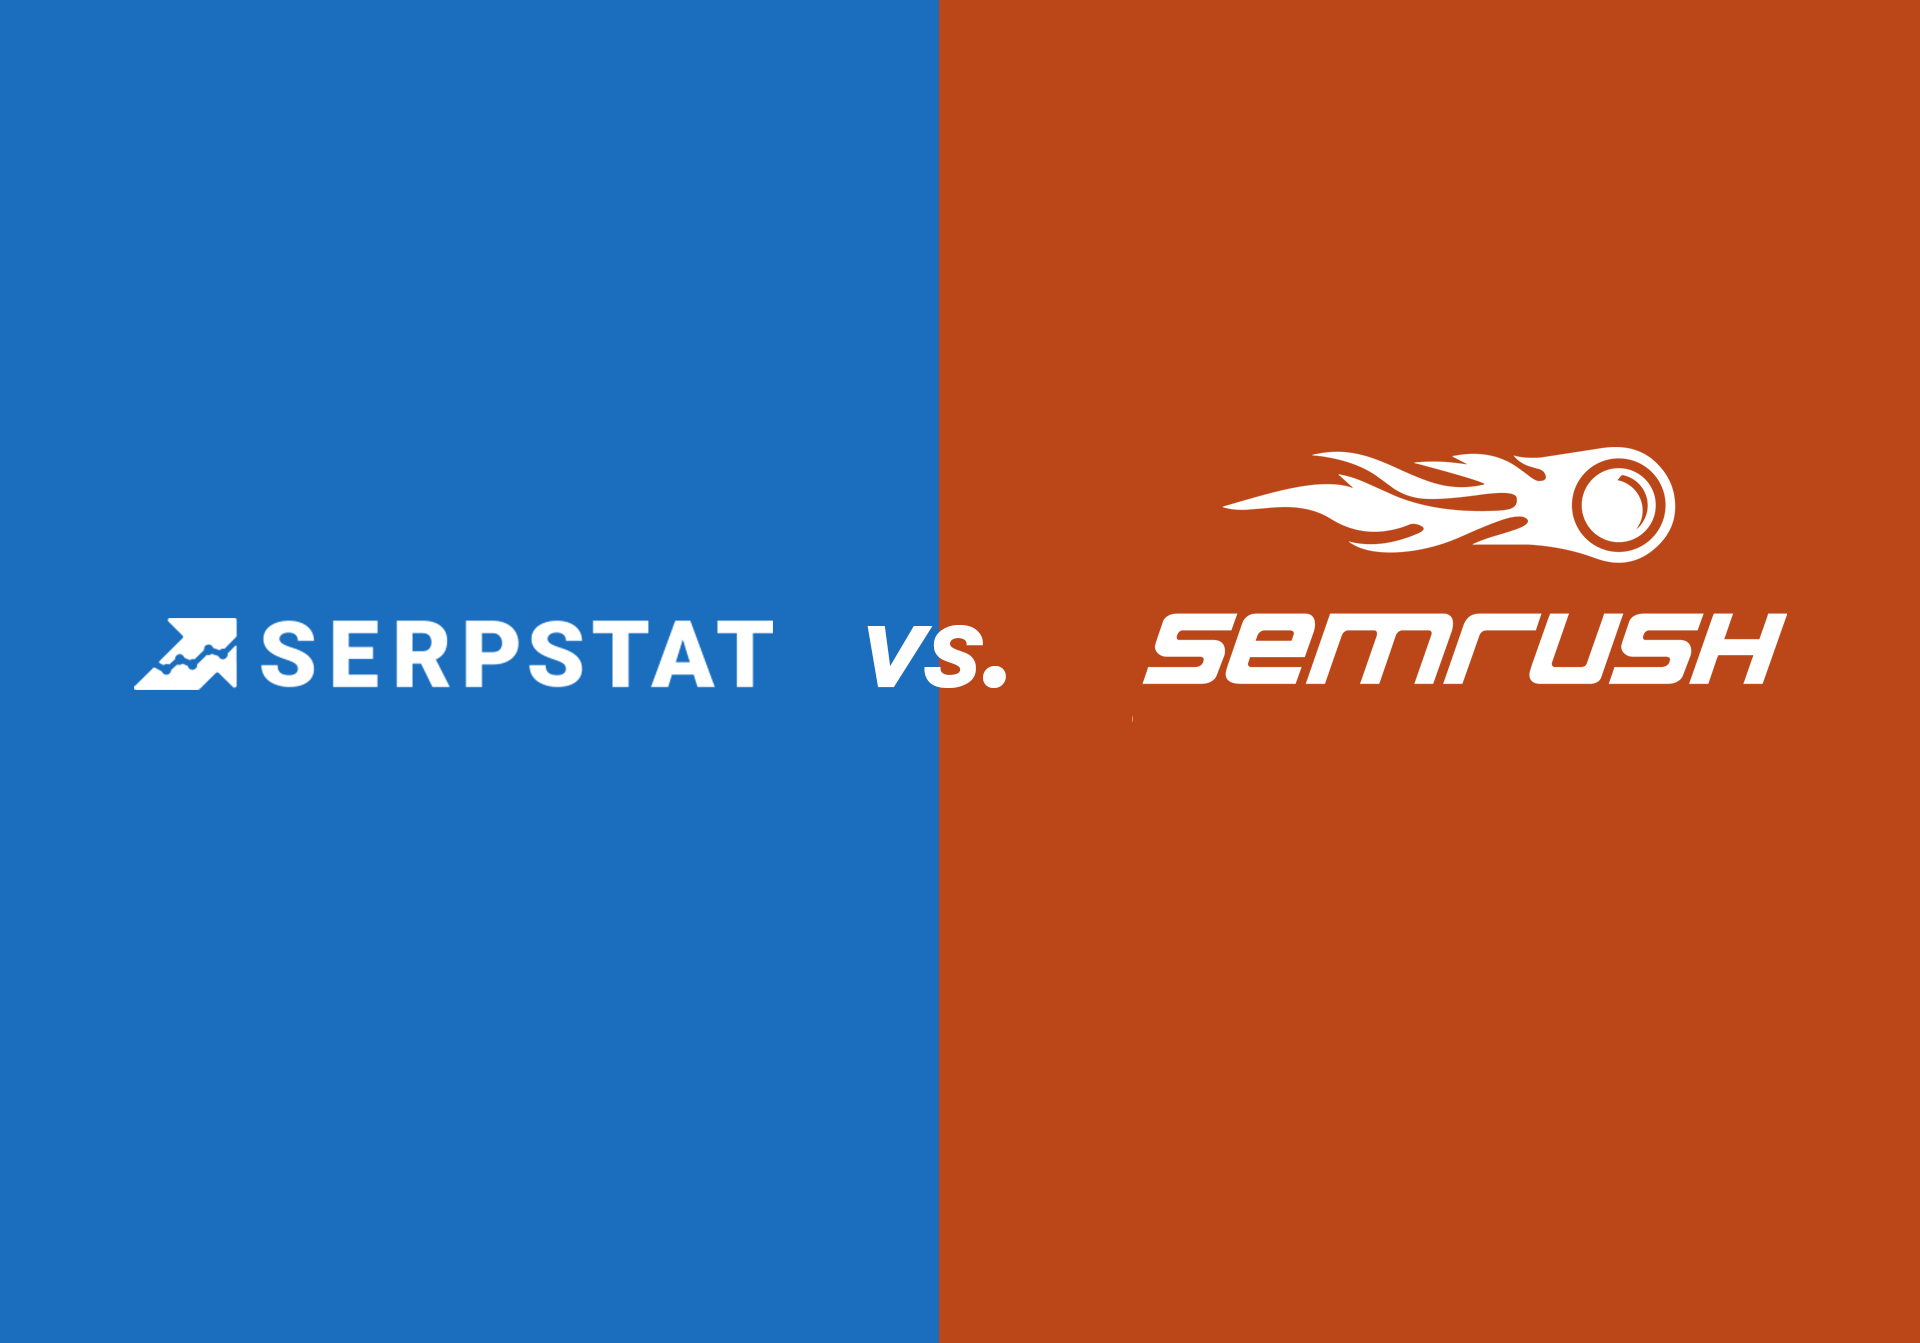 Seo Software Semrush Size Difference